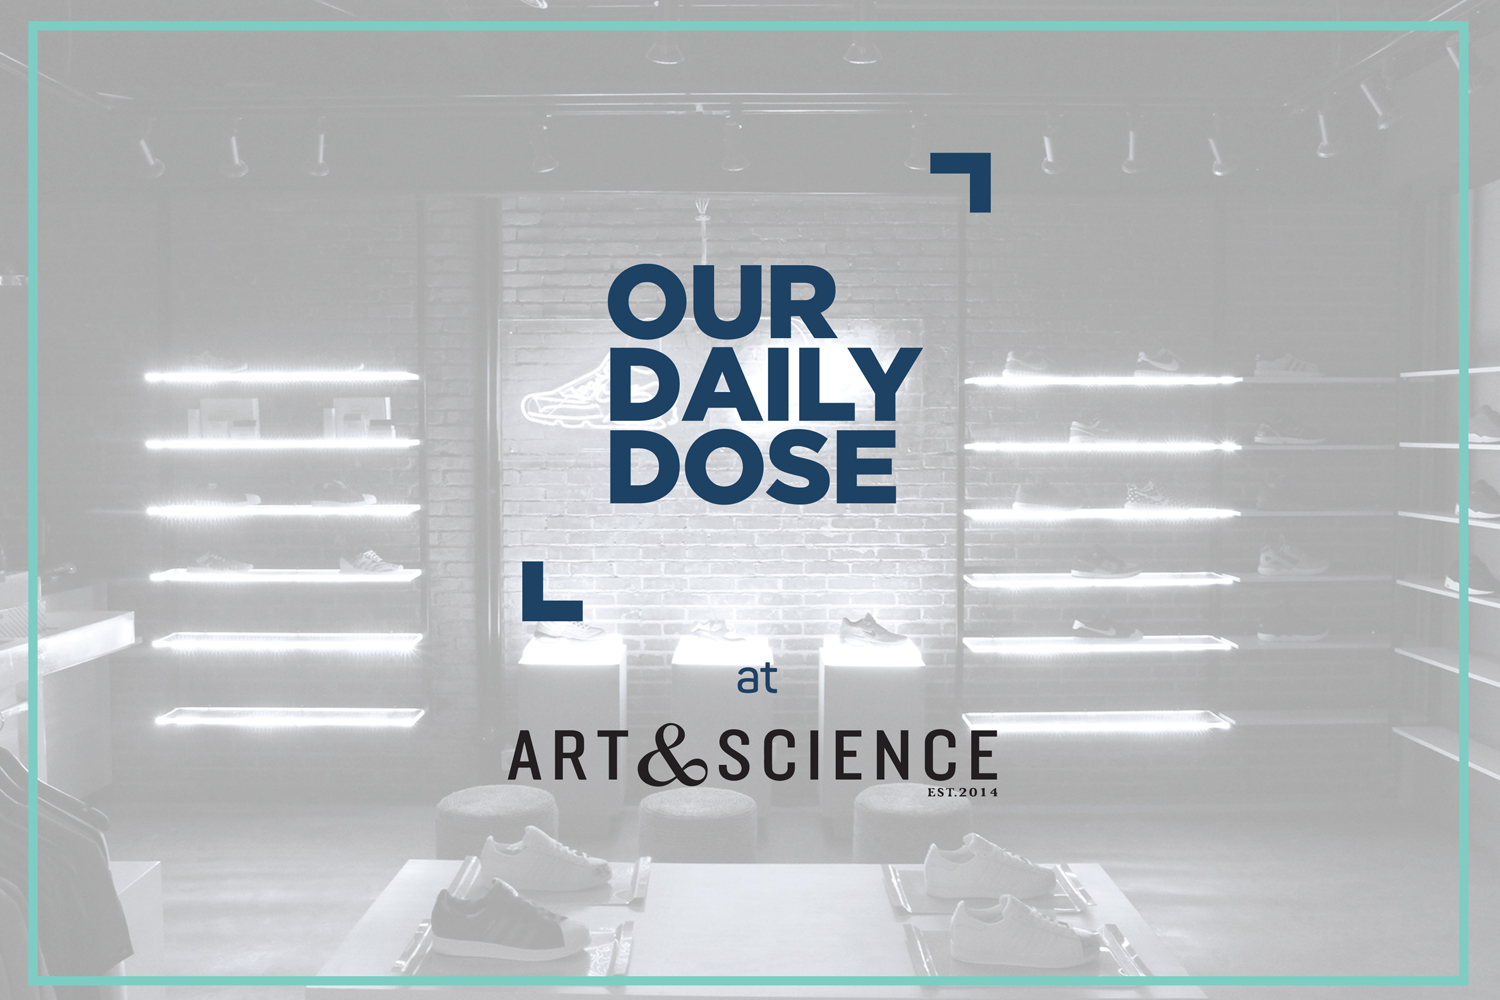 Our Daily Dose Pop-Up store at Art & Science Grand Indonesia